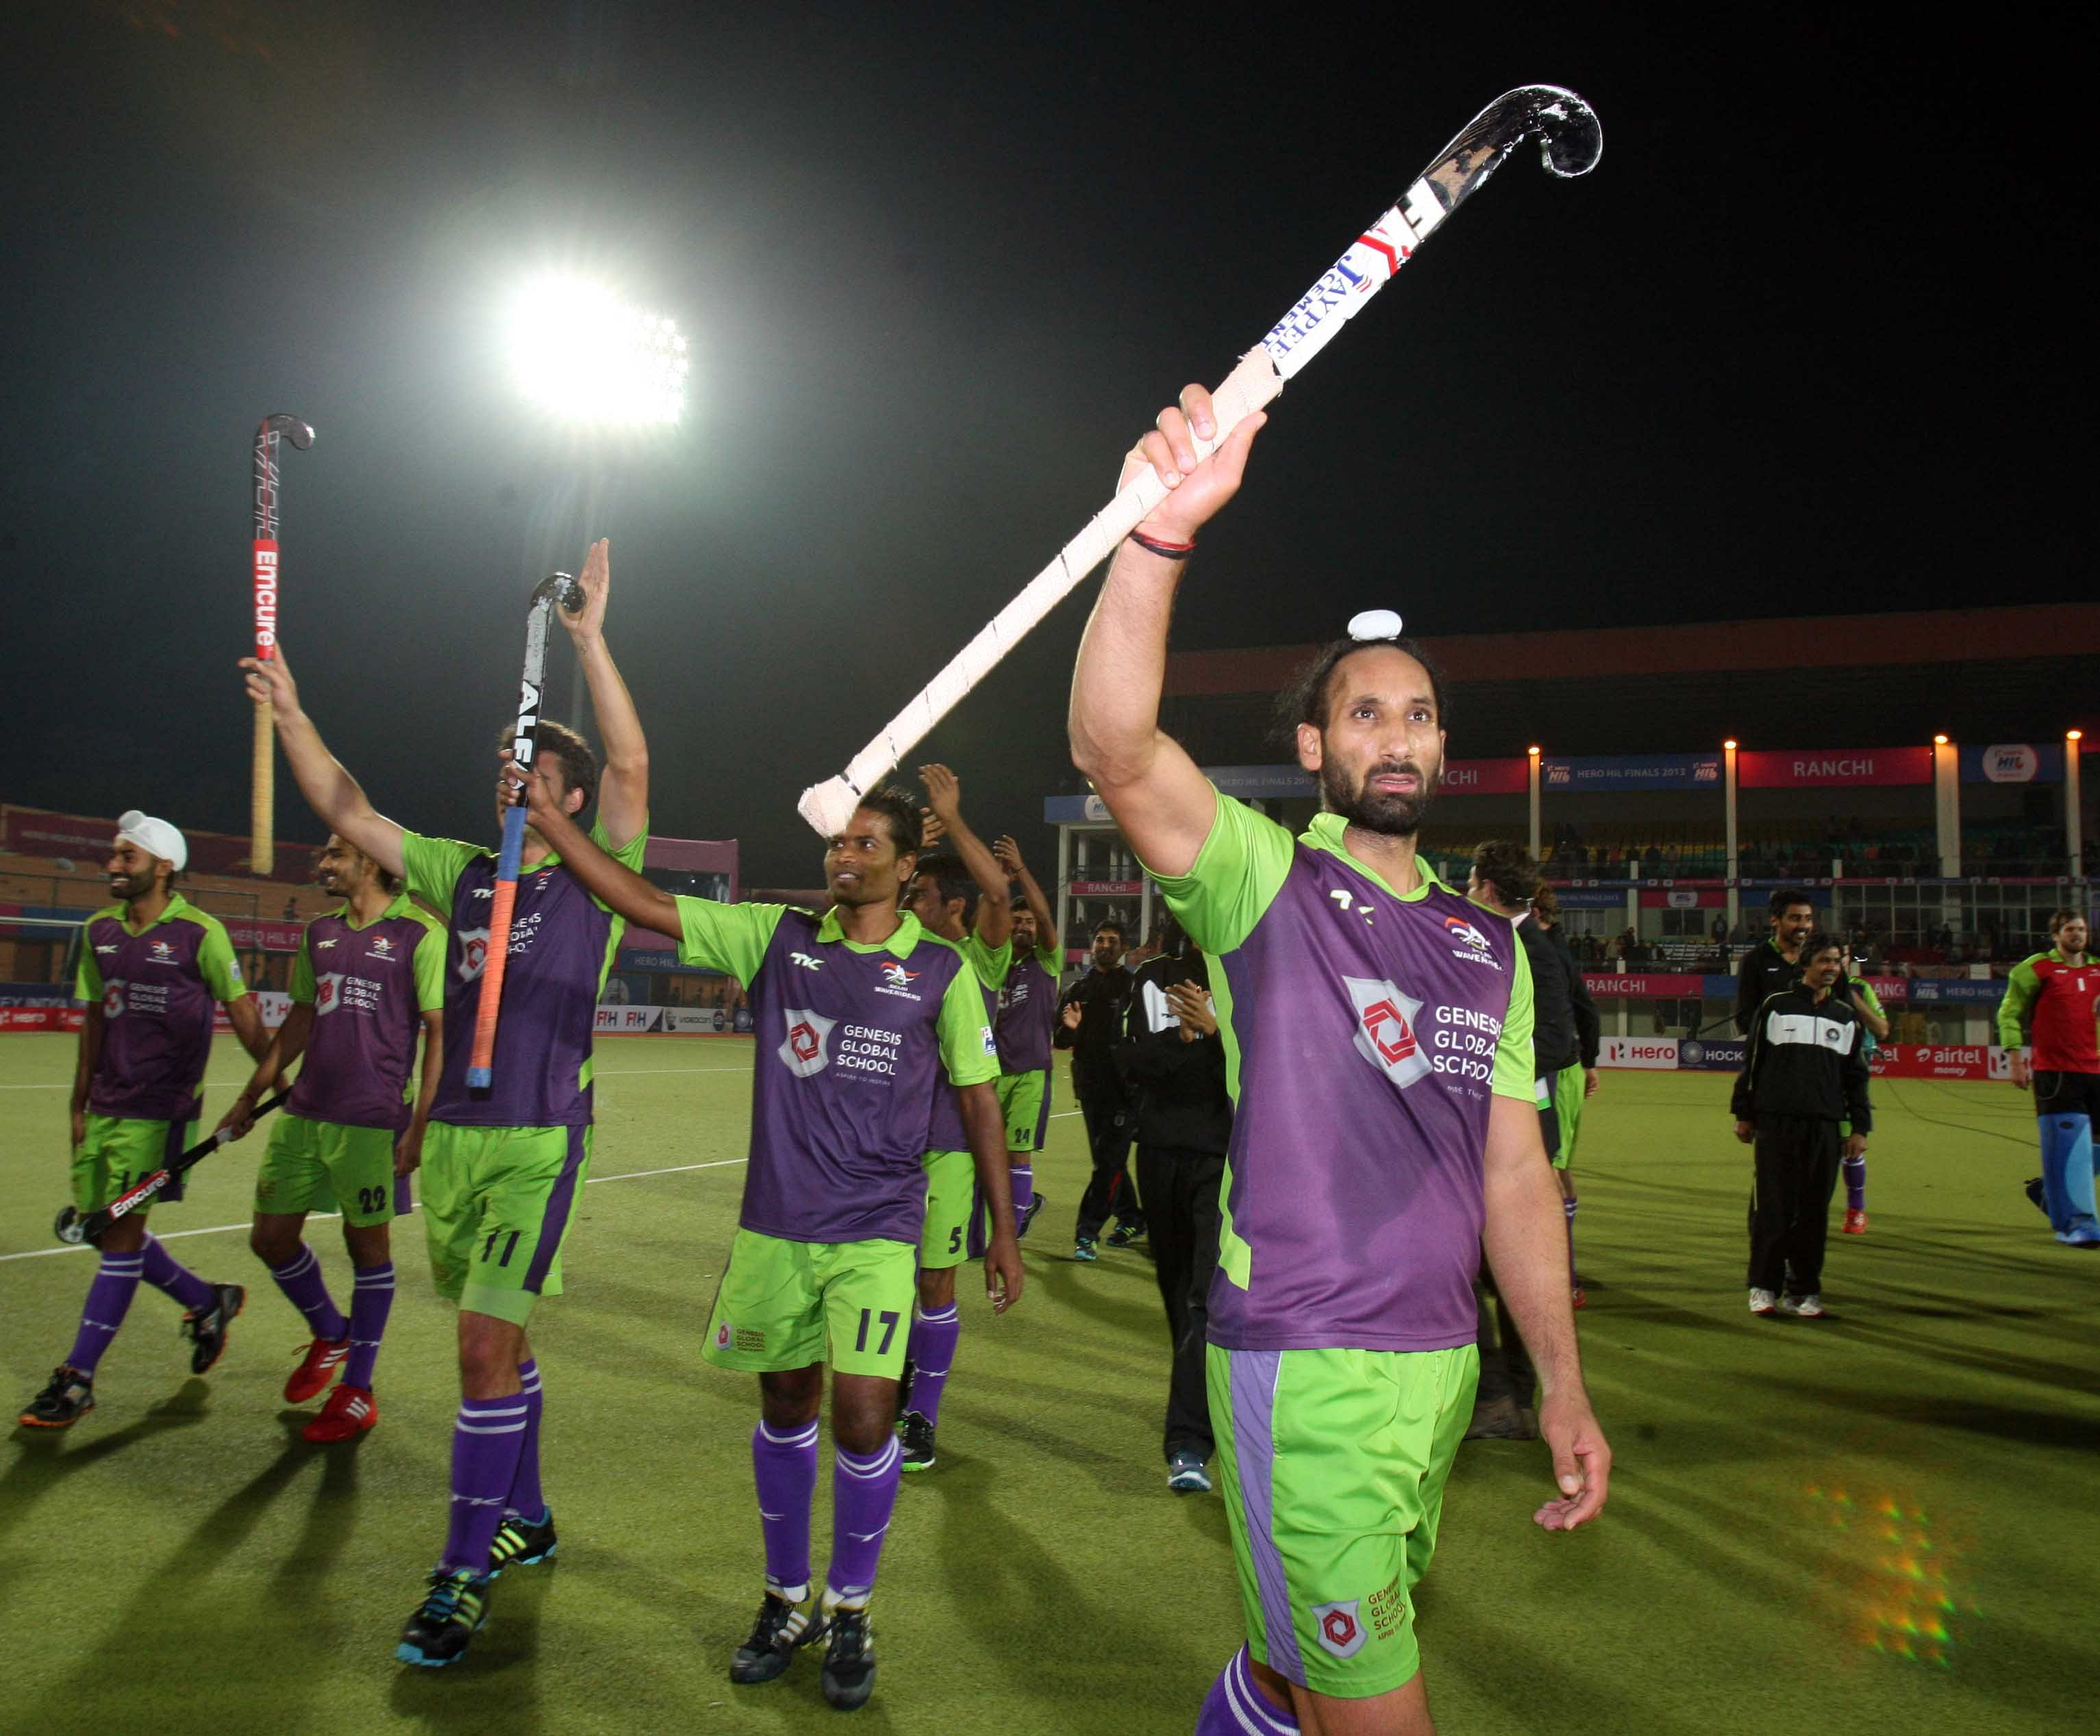 Delhi Waveriders outplay Jaypee Punjab Warriors in Semis, reach Final